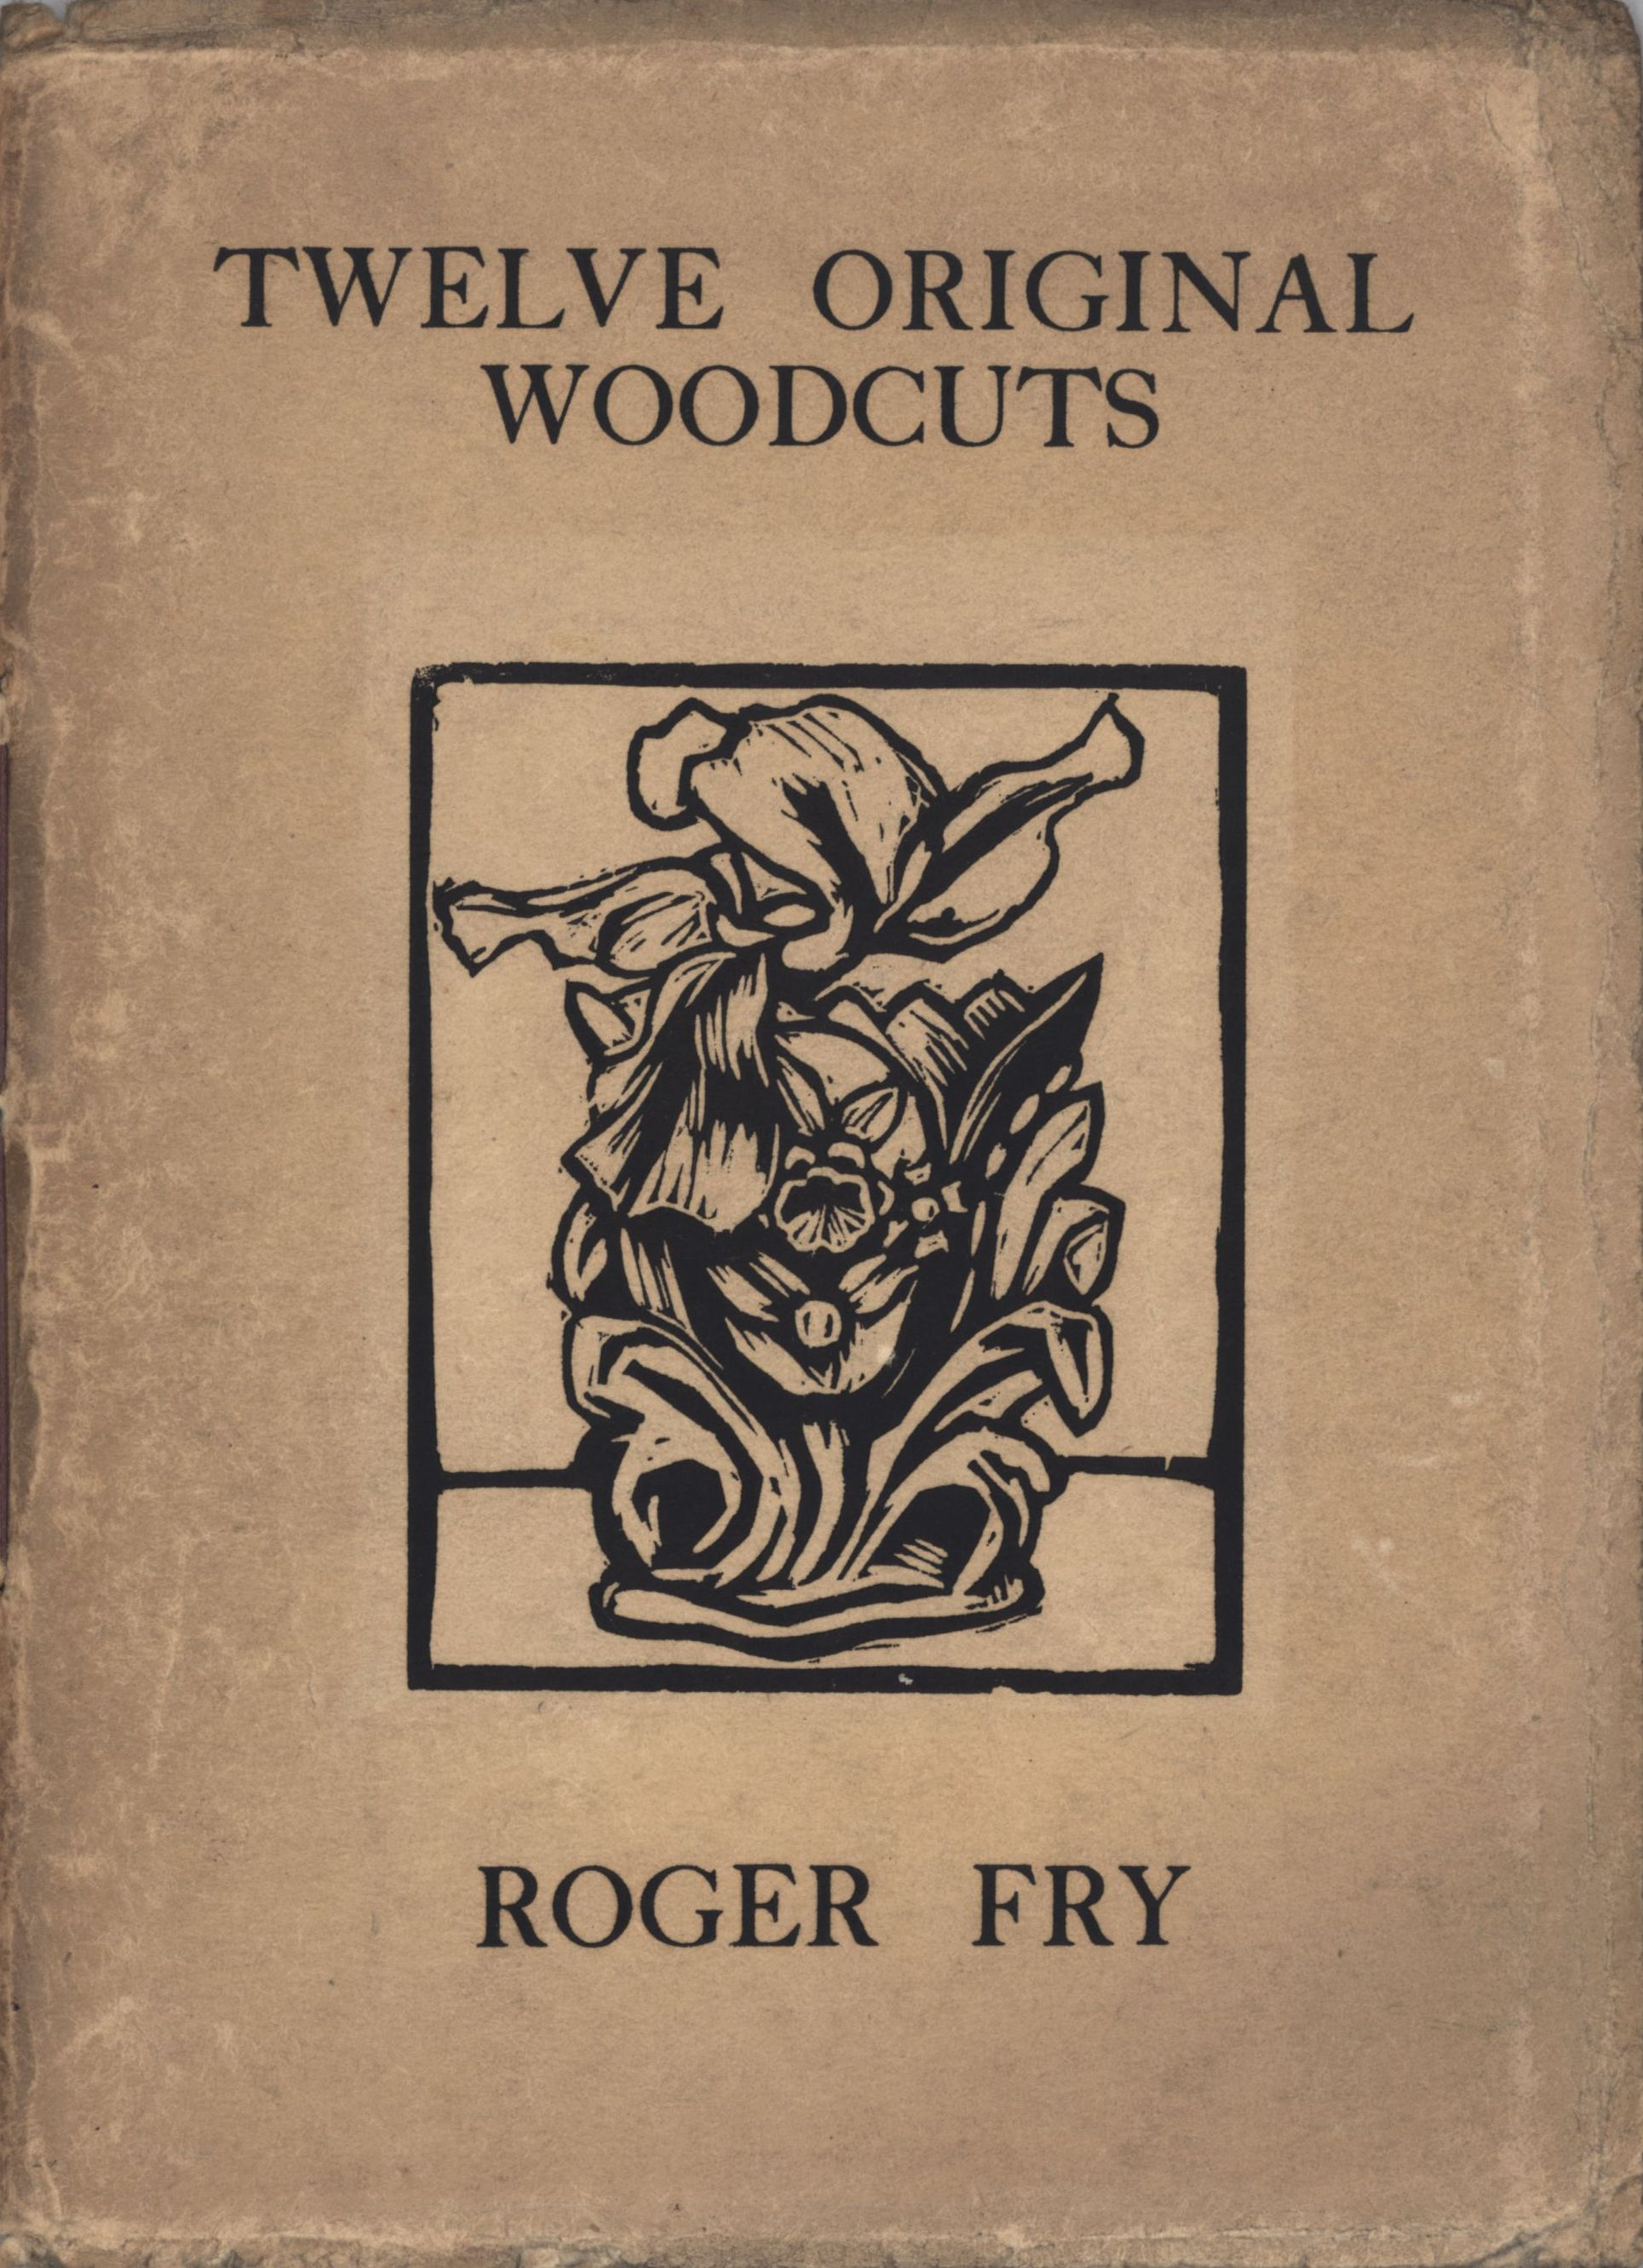 Cover of Roger Fry's 'Twelve Original Woodcuts'.